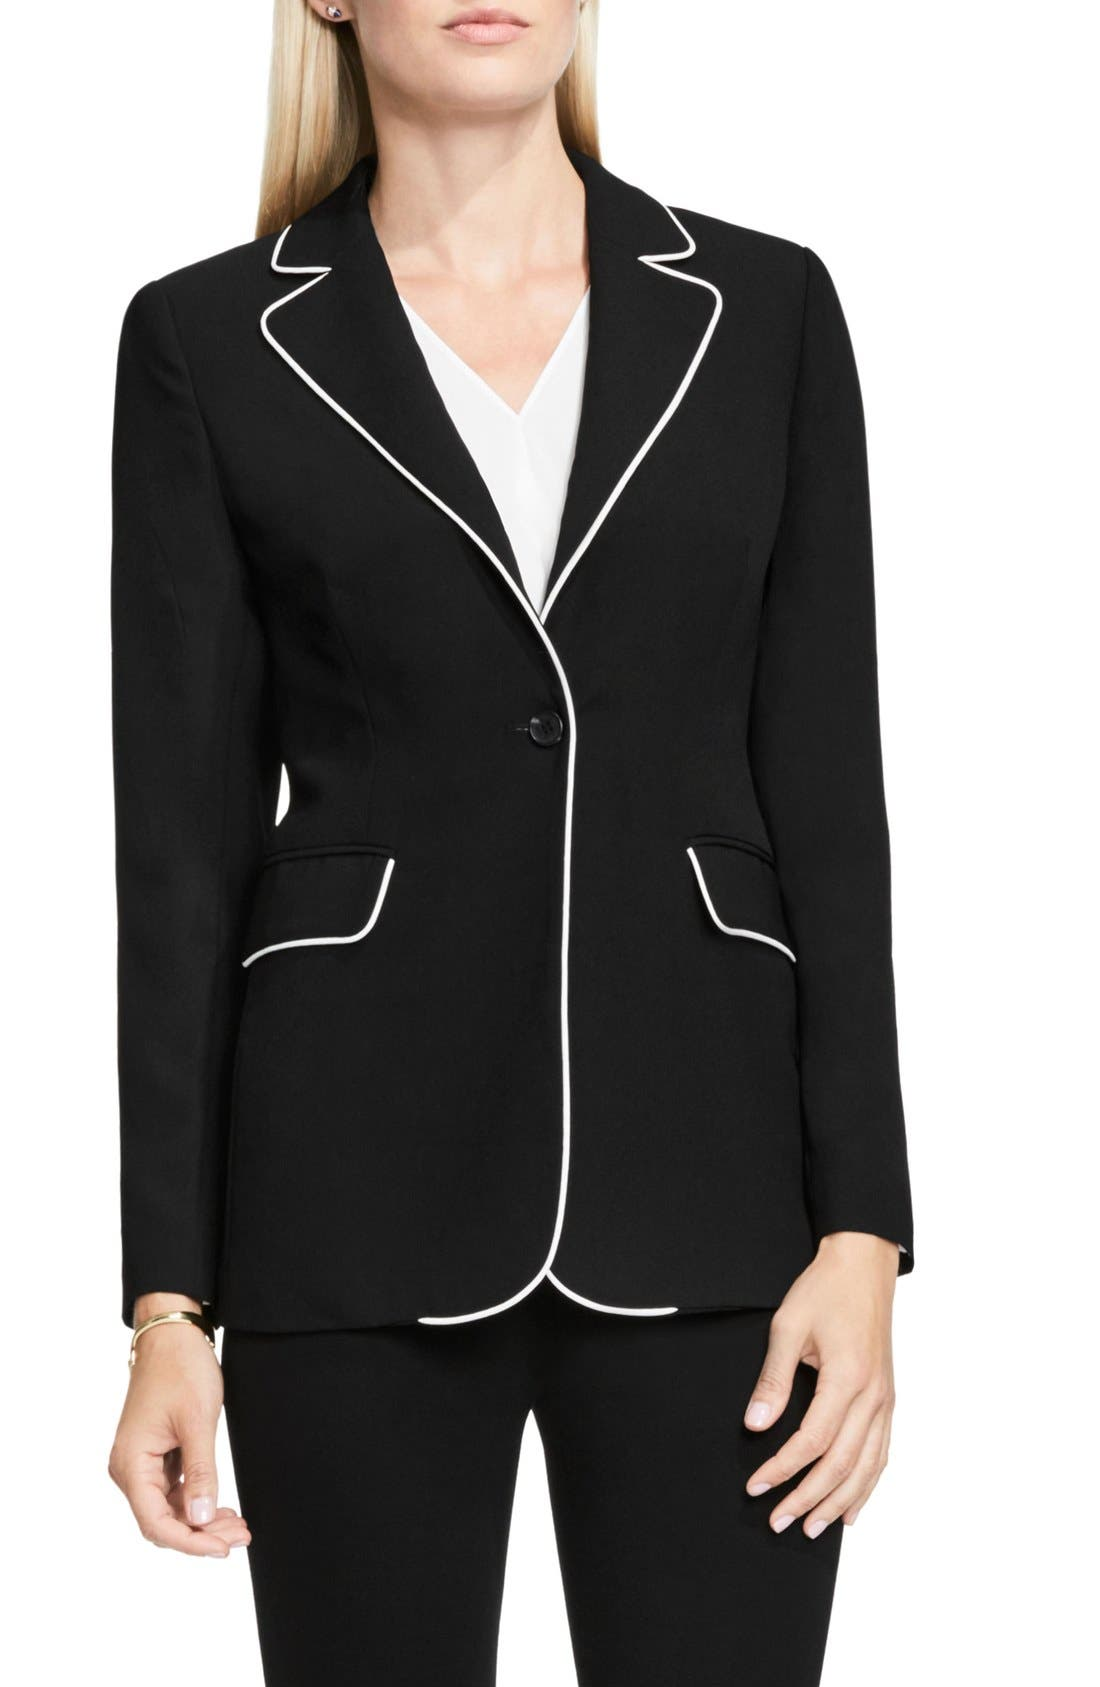 Alternate Image 1 Selected - Vince Camuto Contrast Piping Blazer